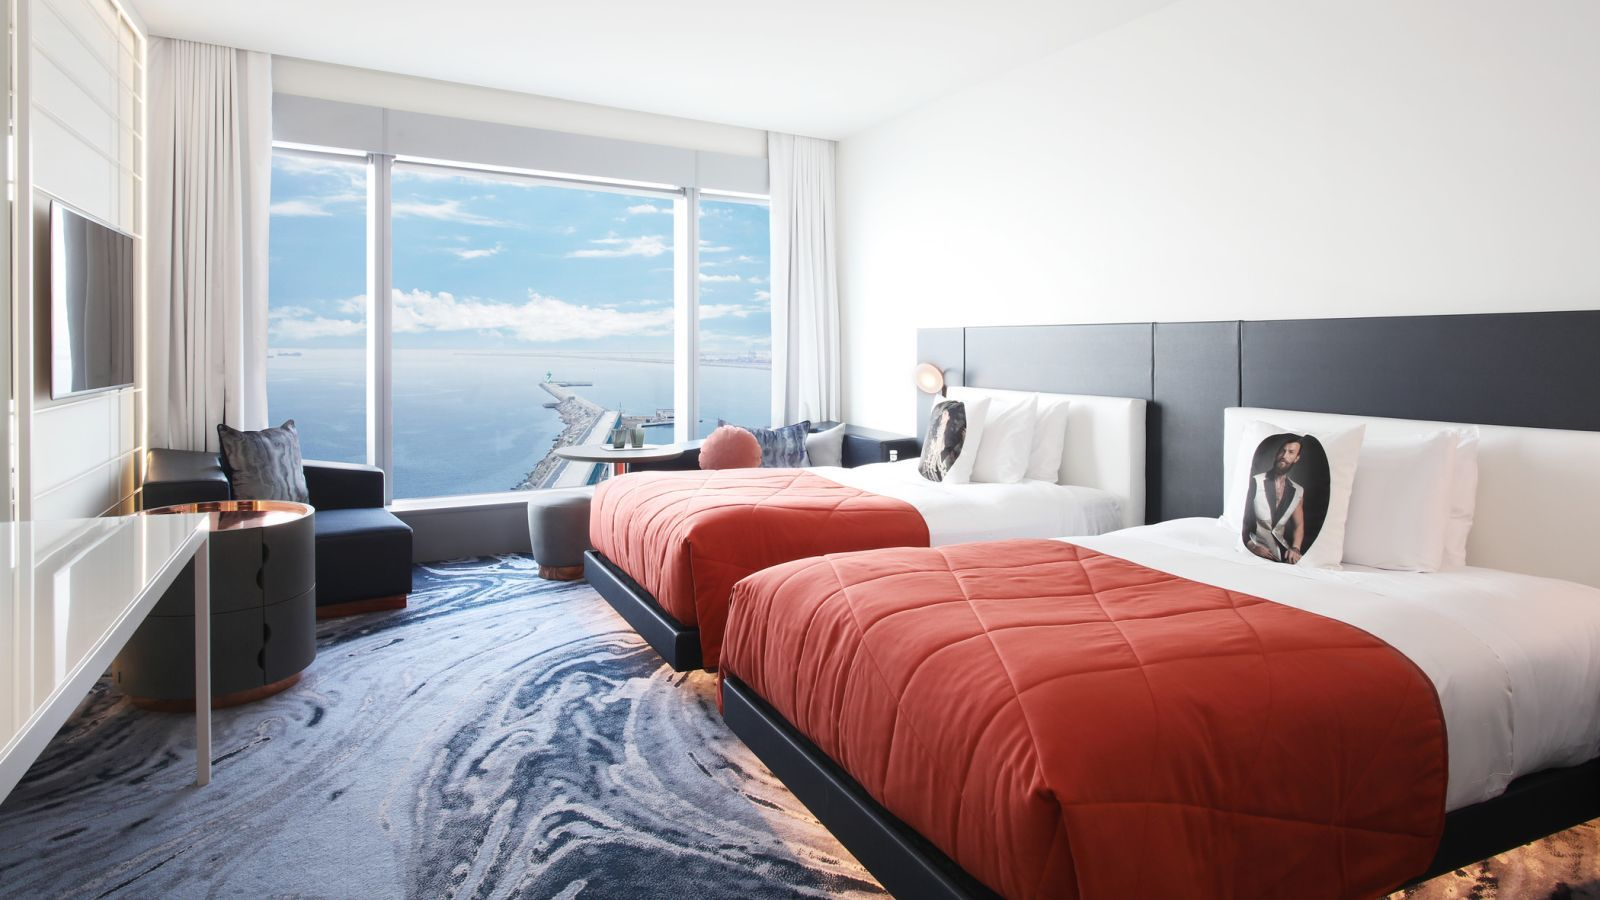 Wonderful Sky Room with twin beds at W Barcelona